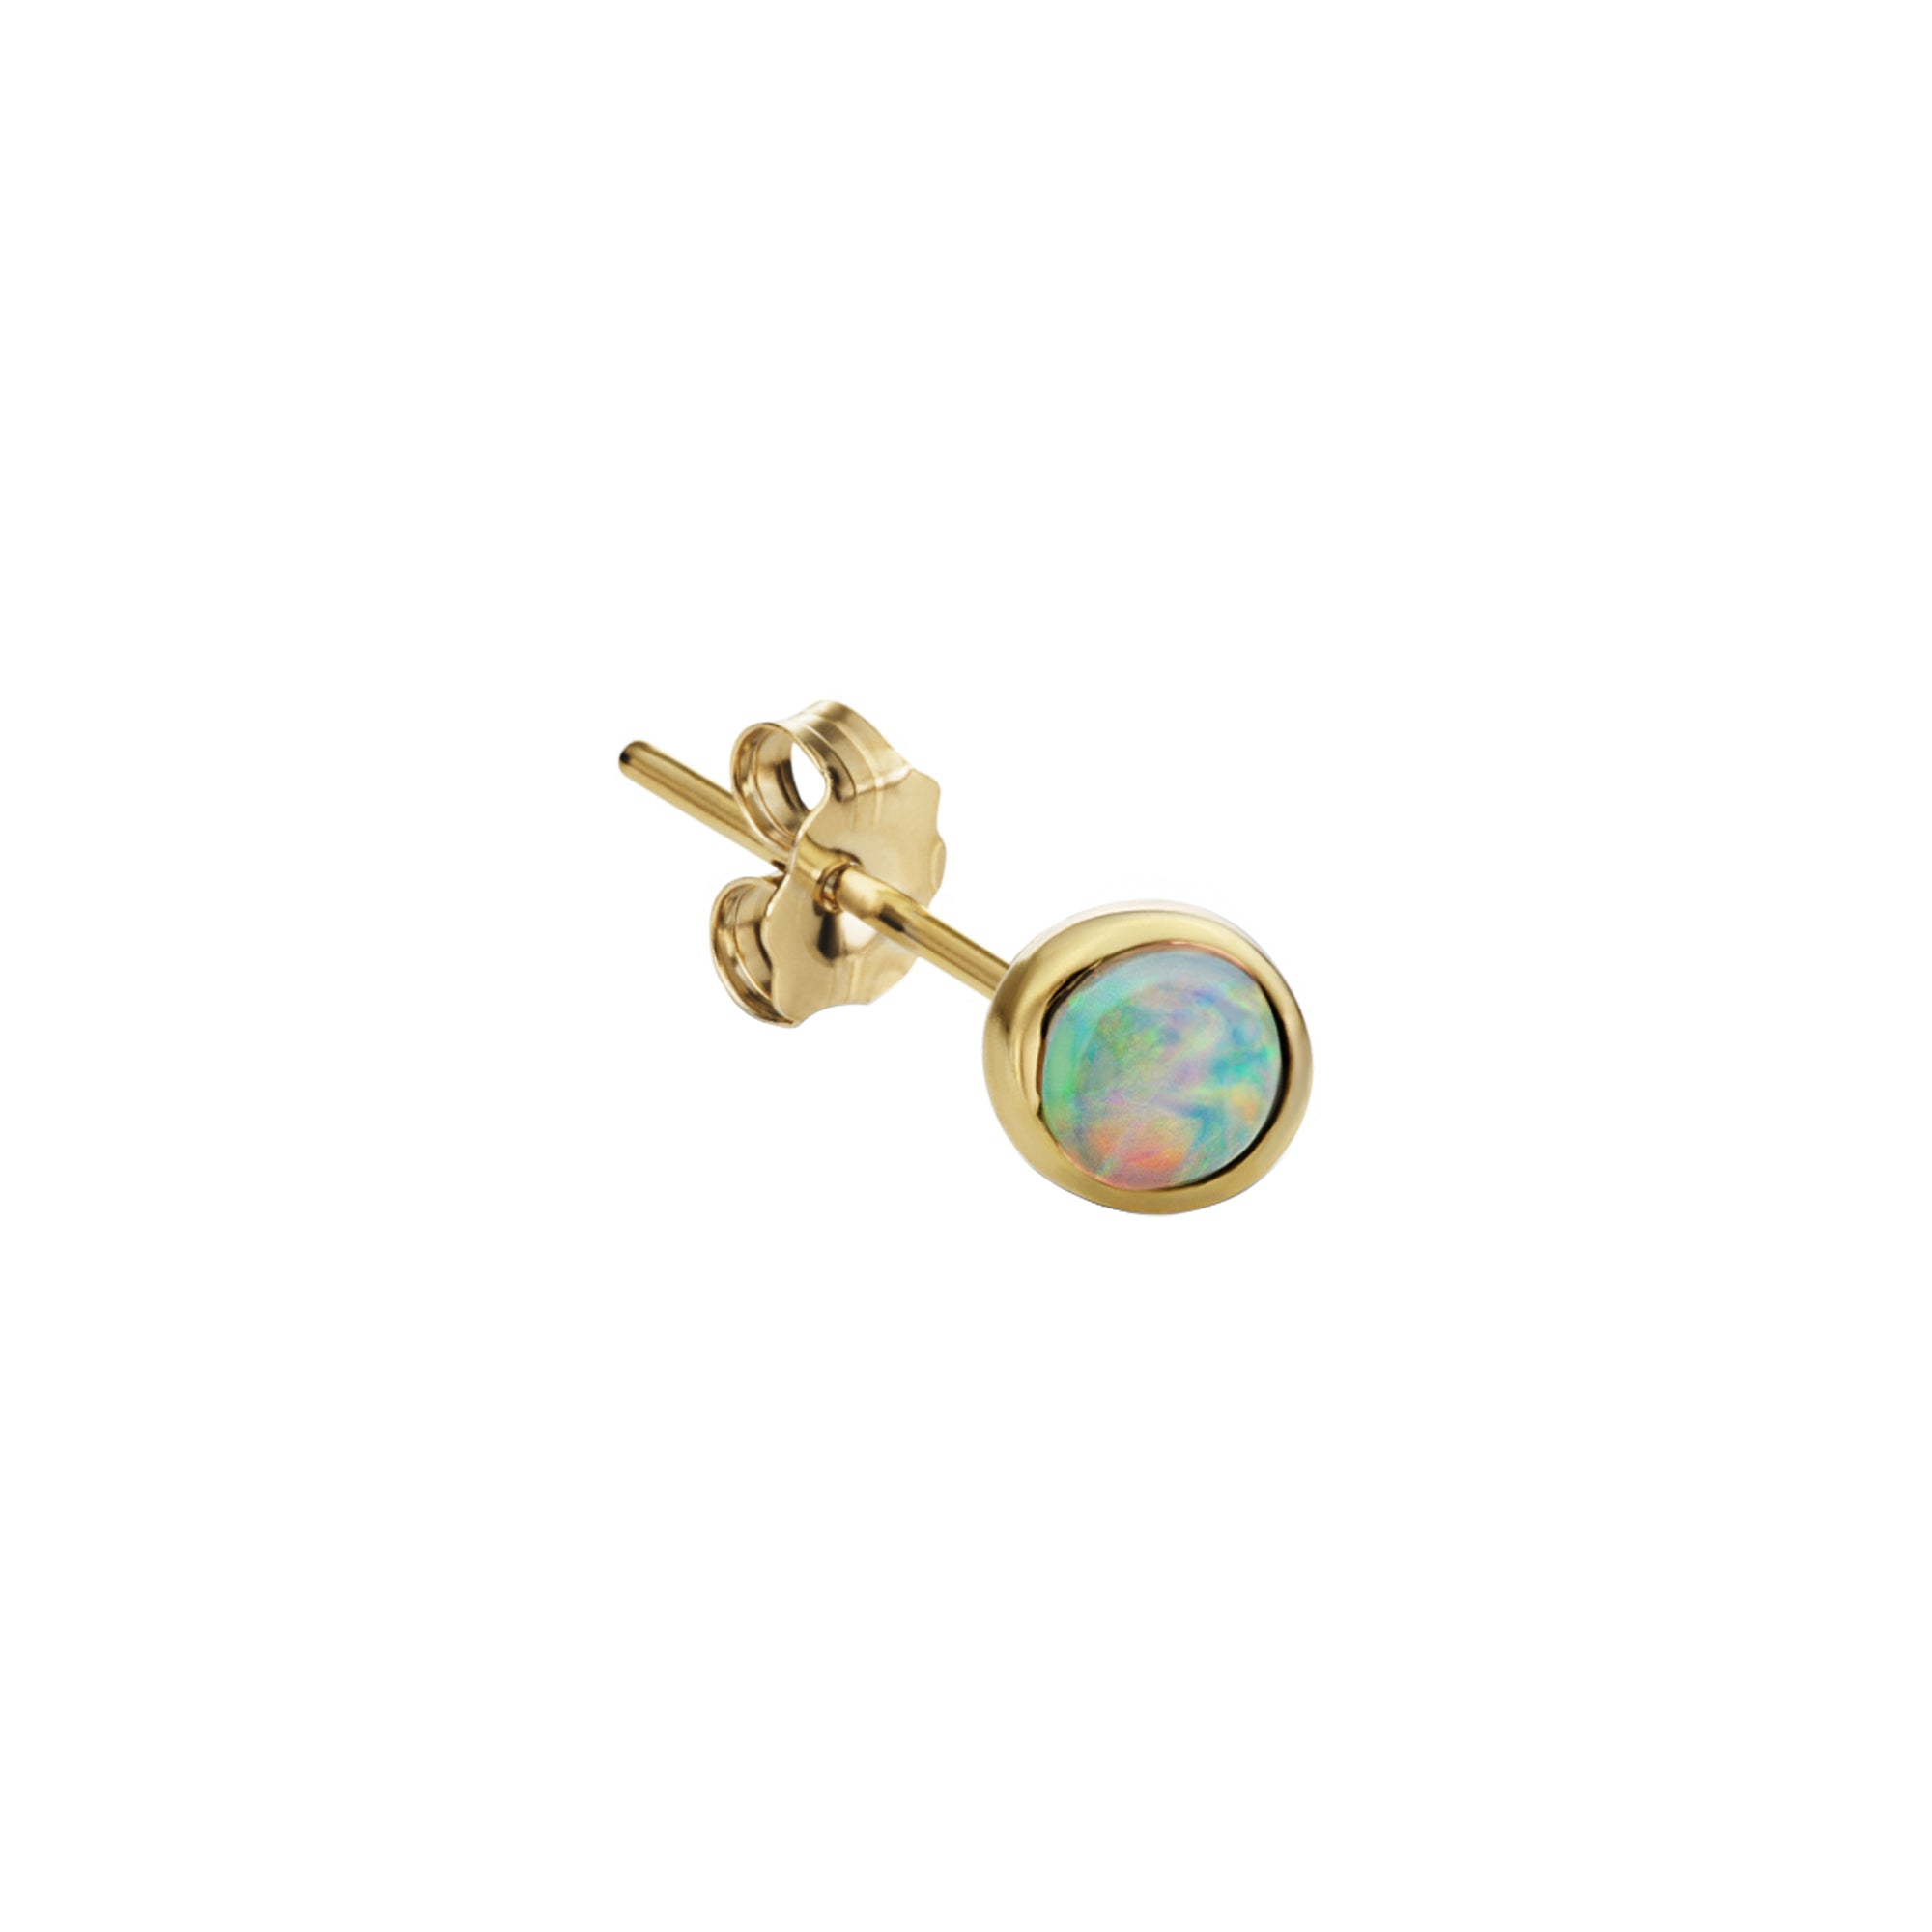 Maria Tash Opal Stud 4mm - Gold - Earrings - Broken English Jewelry